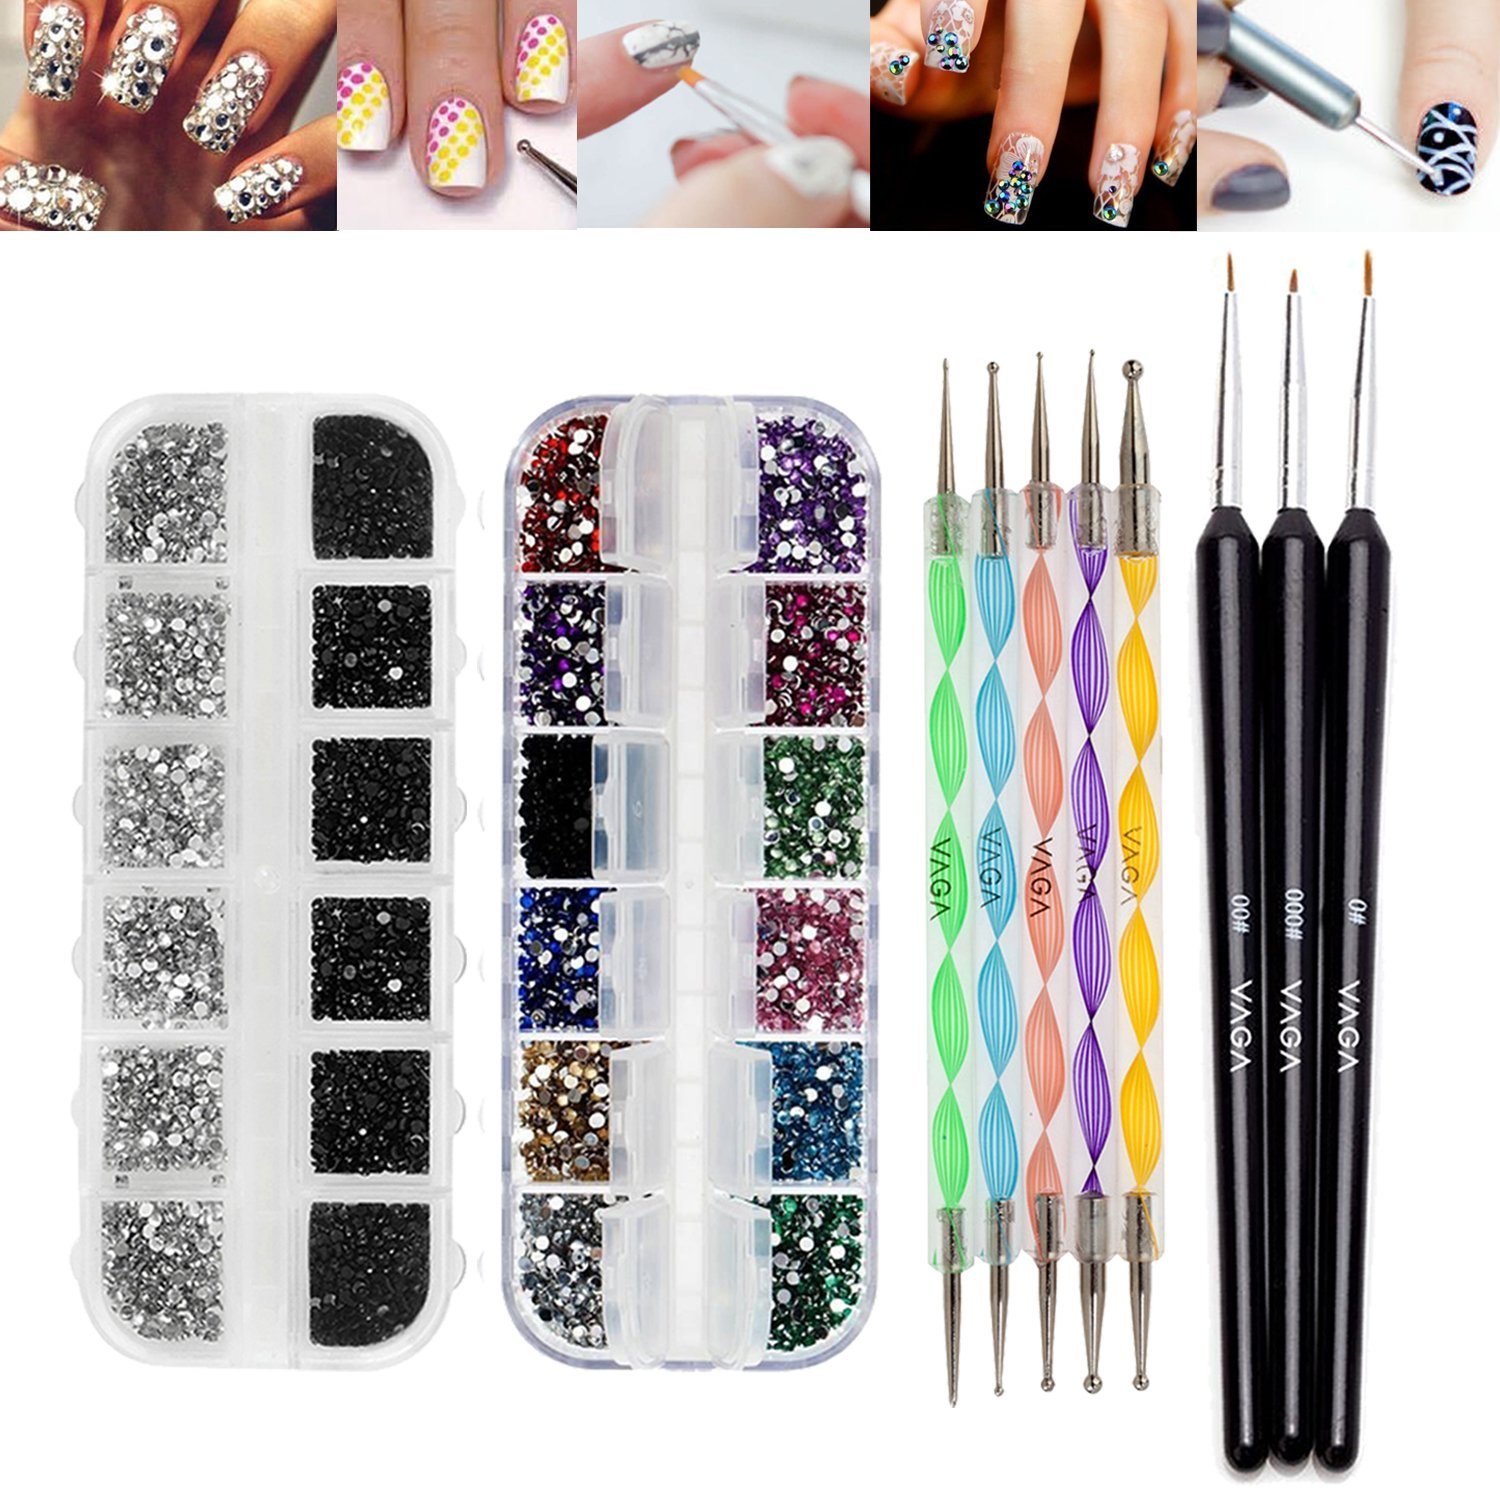 Best Offer Premium Quality Professional Nail Art Accessories Set Kit With 5 Colorful Double Ended Dotting / Marbling Tools / Dotters, 3 Wooden Handled Detailer Brushes / Stripers / Liners, 3000pcs Mixed Colors Rhinestones In Case And 2000pcs 2mm Round Black And Silver Crystals / Jewels Decorations